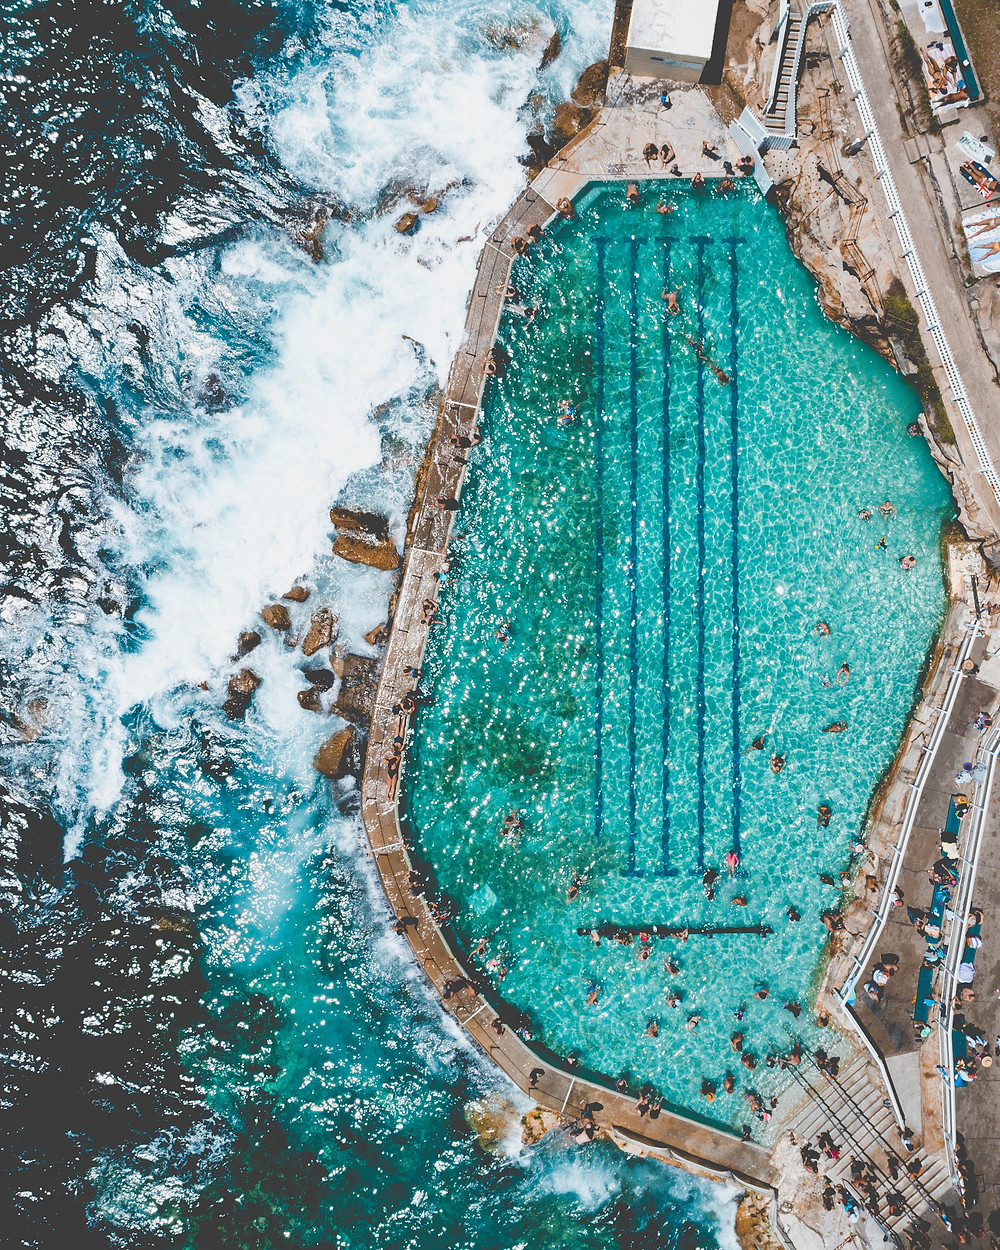 Image of Bronte rock pool.